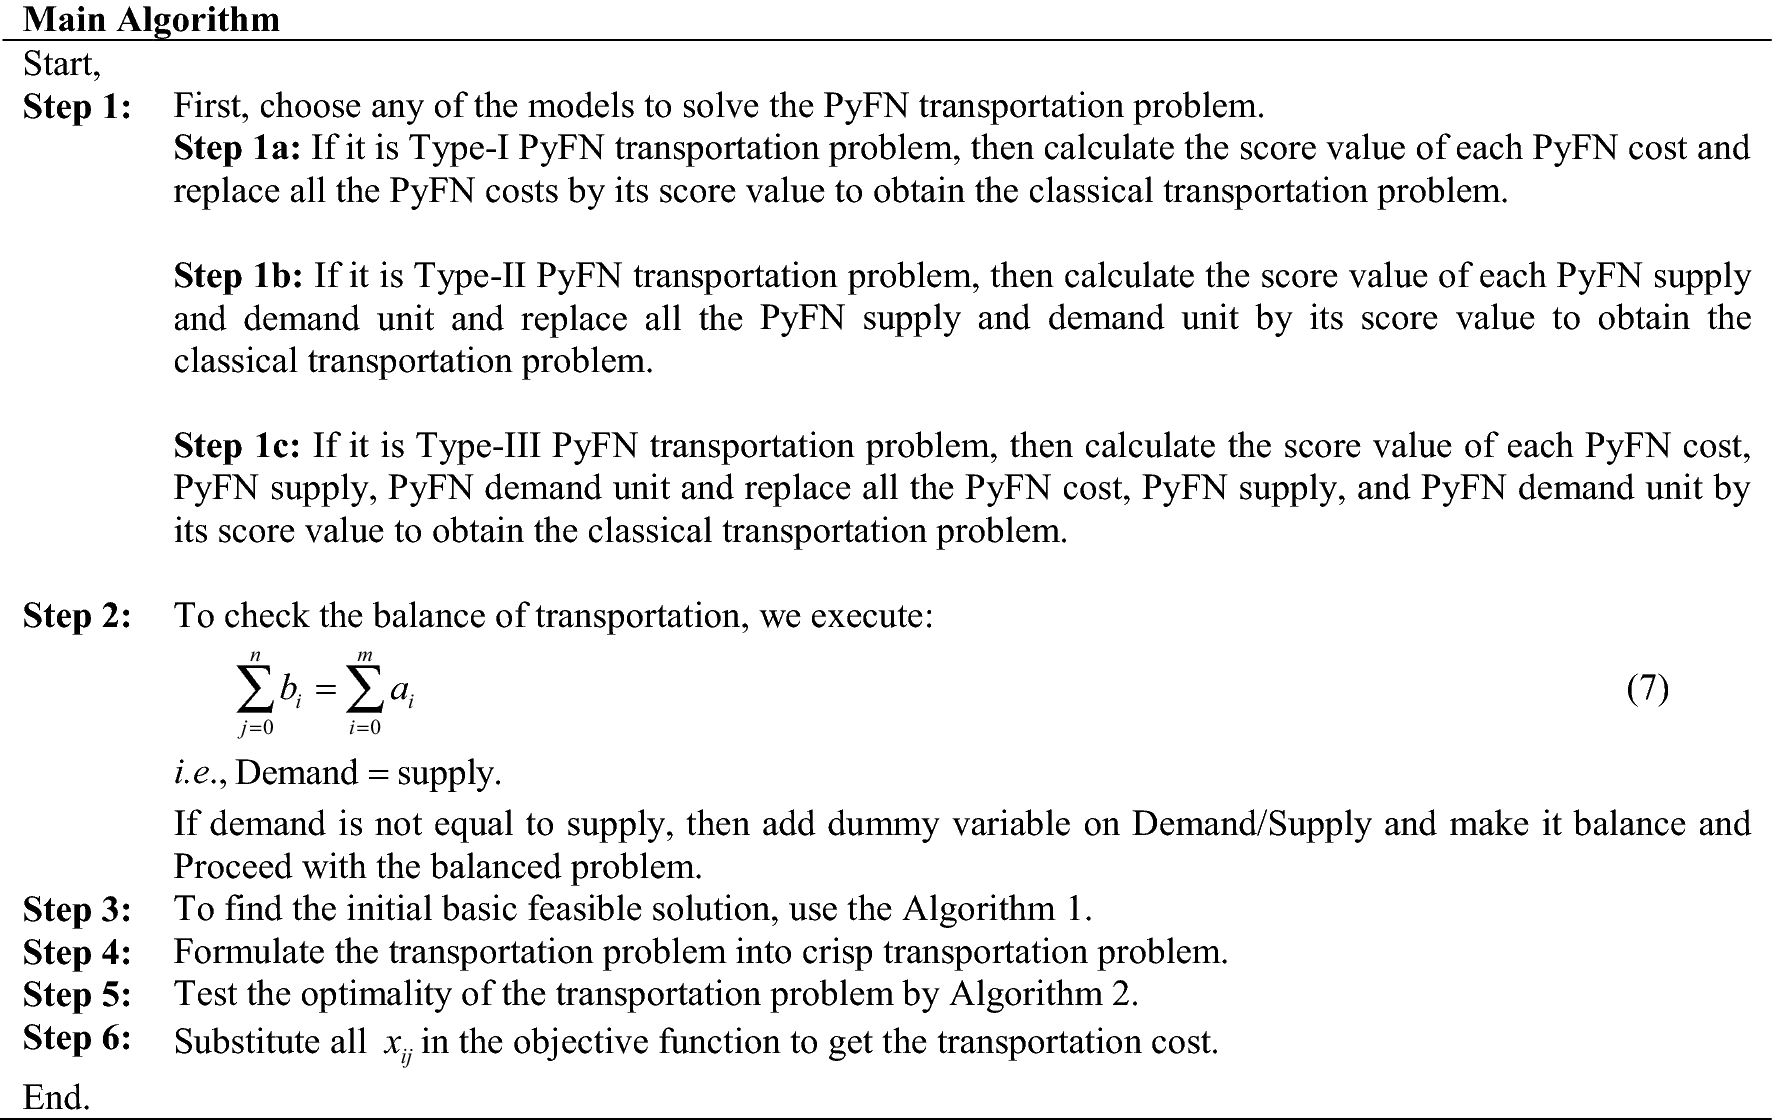 A Pythagorean fuzzy approach to the transportation problem